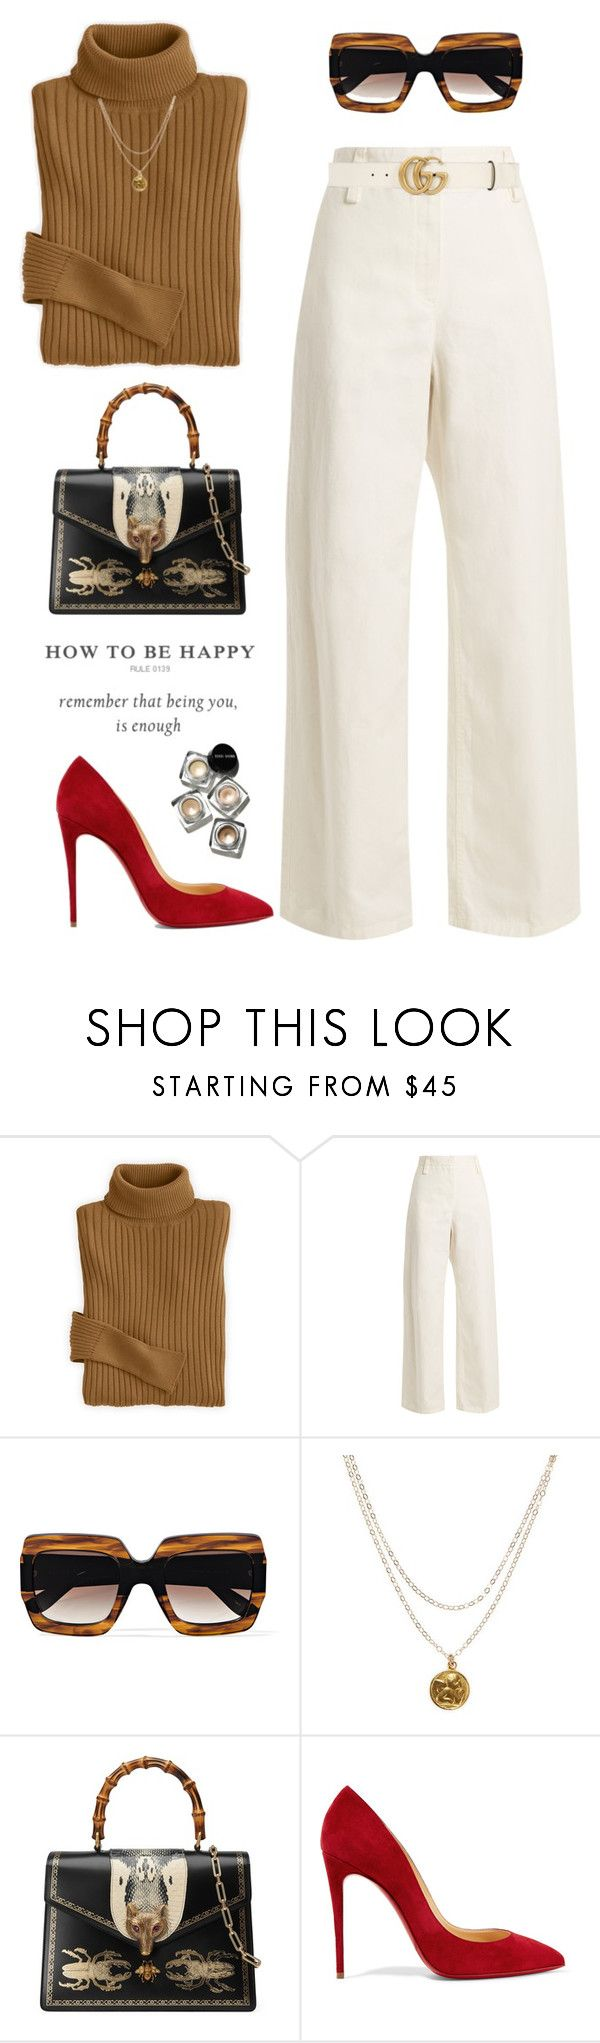 """""""Be happy!"""" by yexyka ❤ liked on Polyvore featuring The Row, Gucci, Mary Louise Designs, Christian Louboutin, Bobbi Brown Cosmetics, contestentry and polyPresents"""